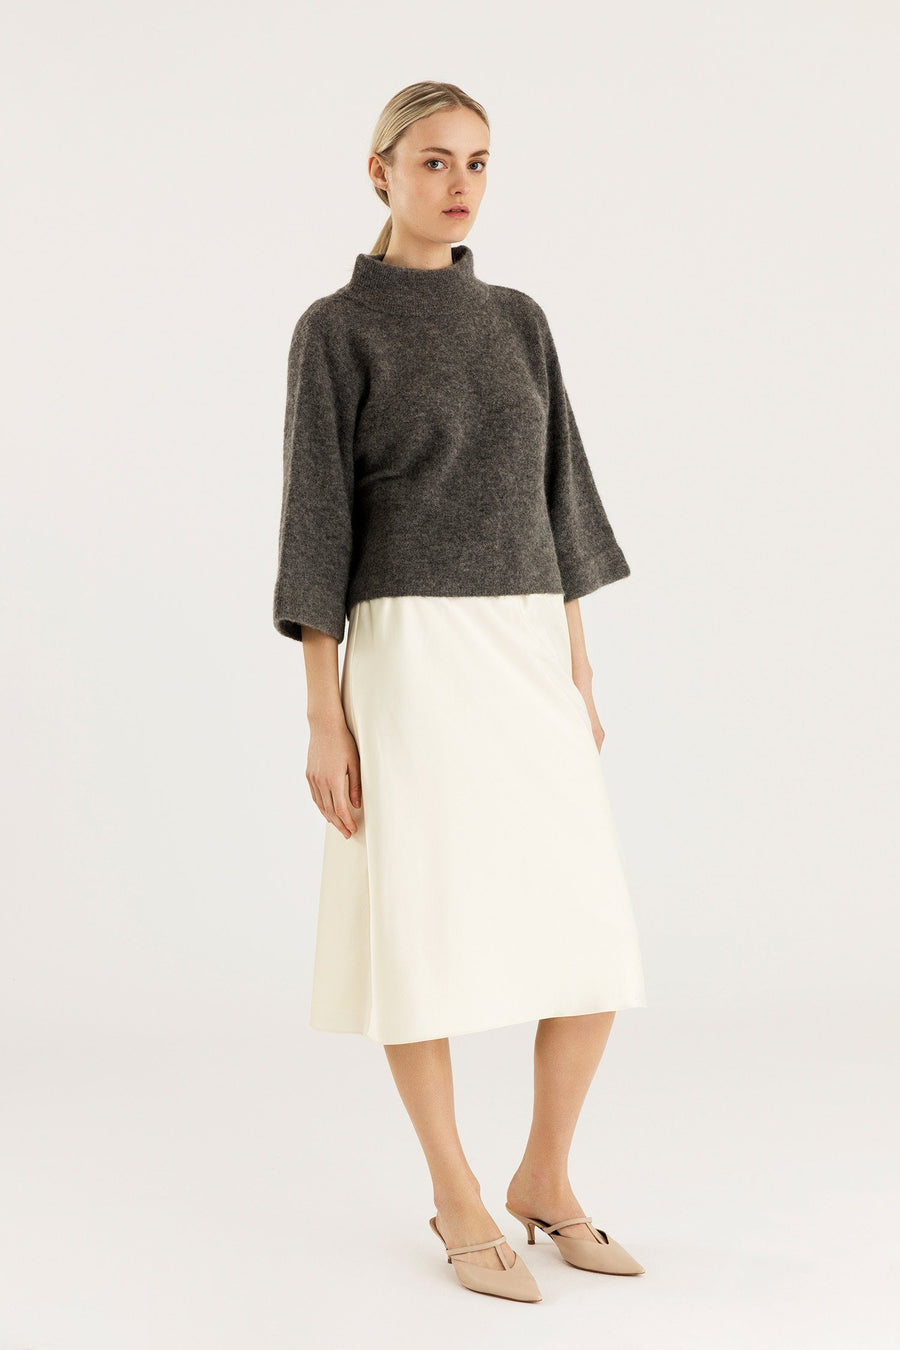 ELITA SWEATER - GREY Sweater Stylein